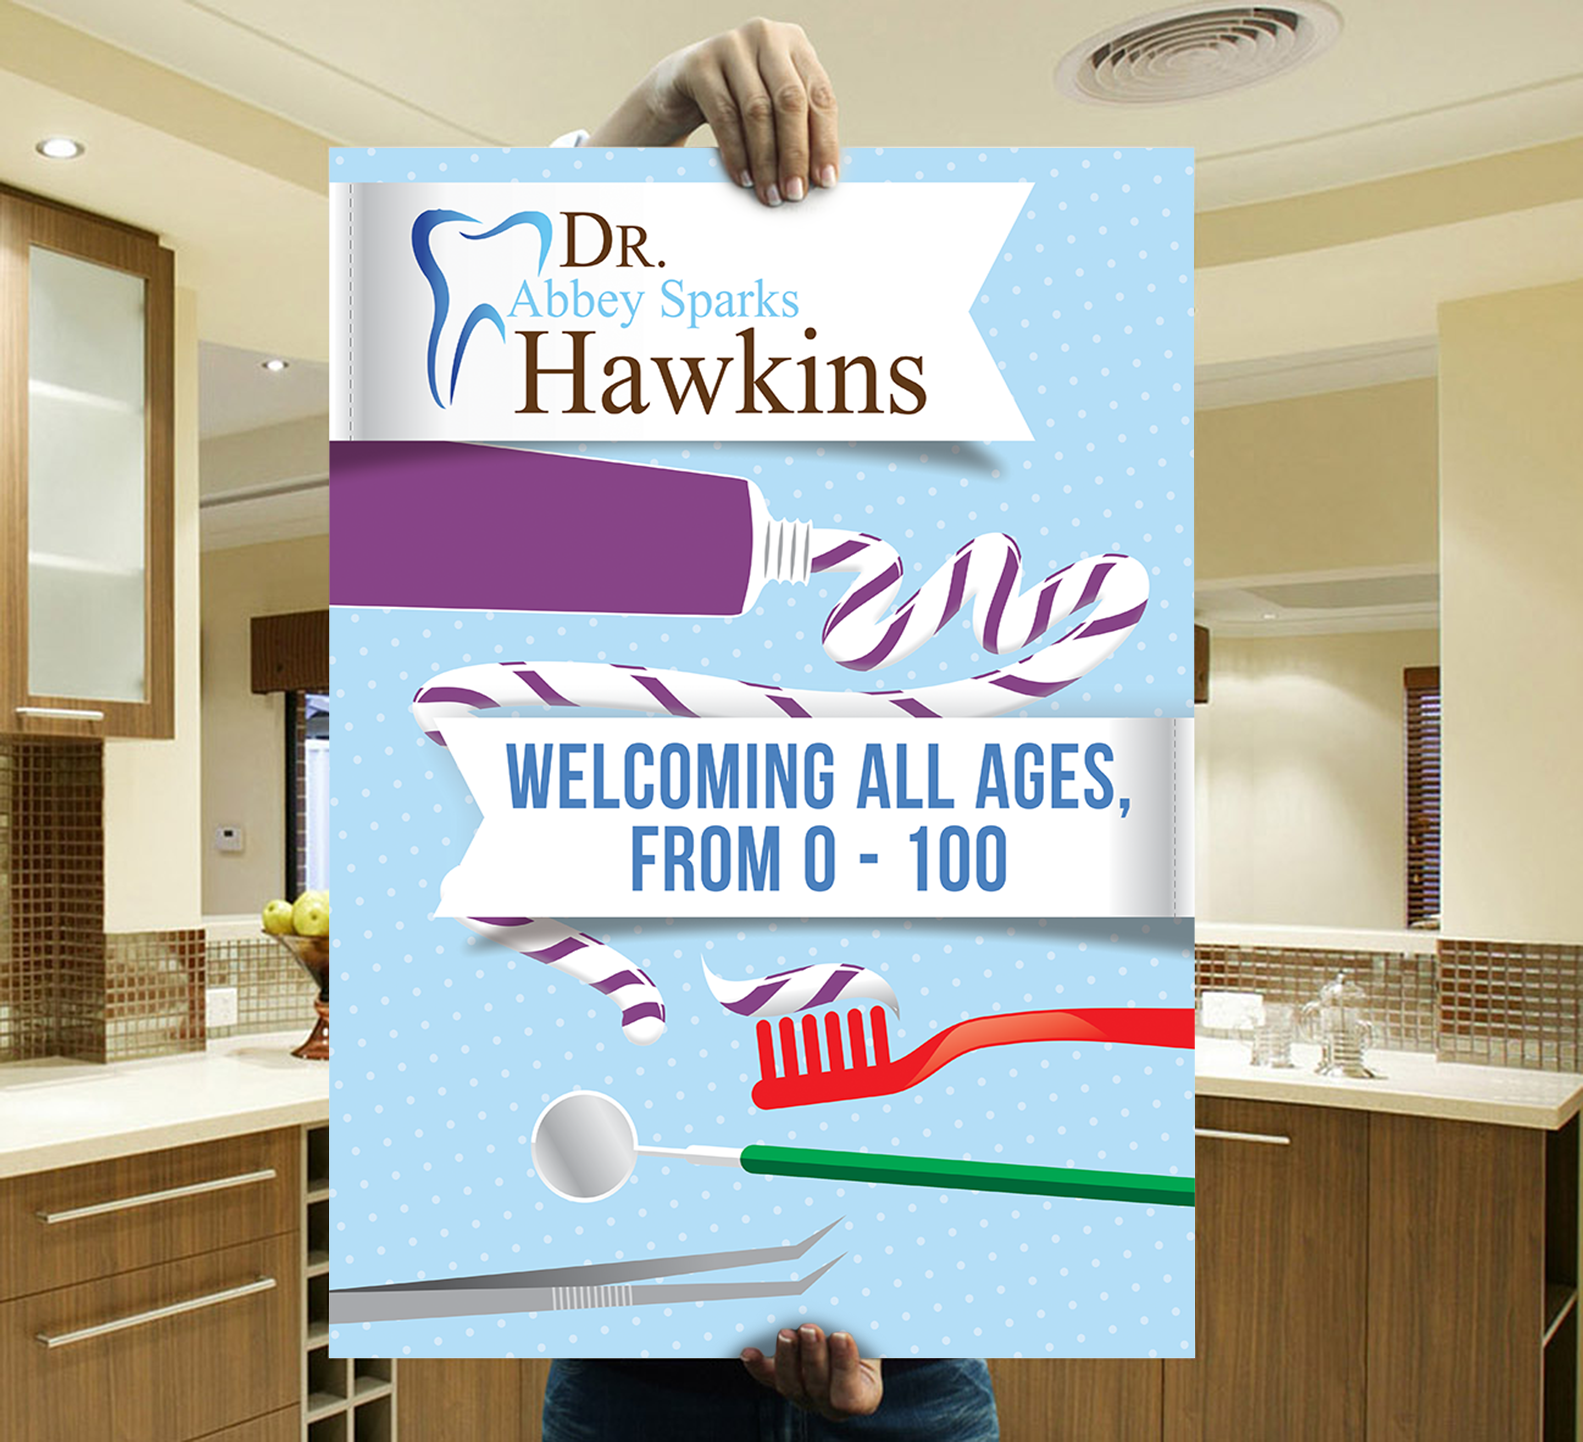 dentist advertisement poster board 110designs